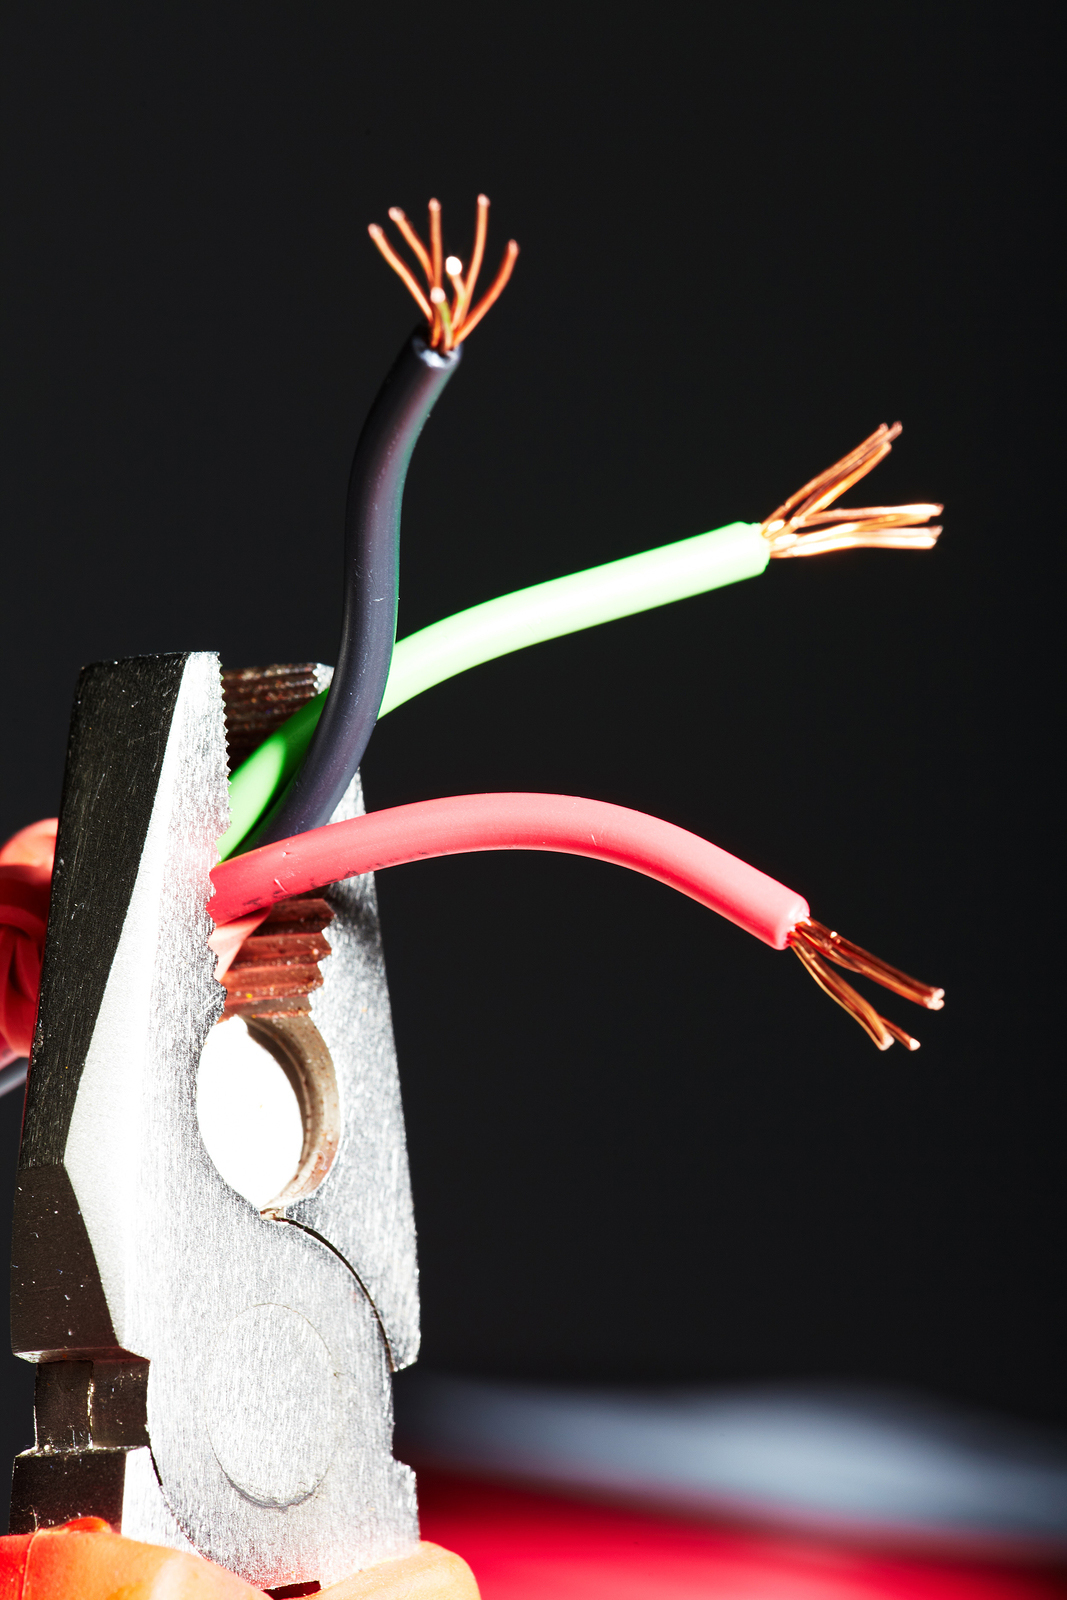 why are electric wires color coded the way they are?Electrical Wiring Colors Red Black White #9